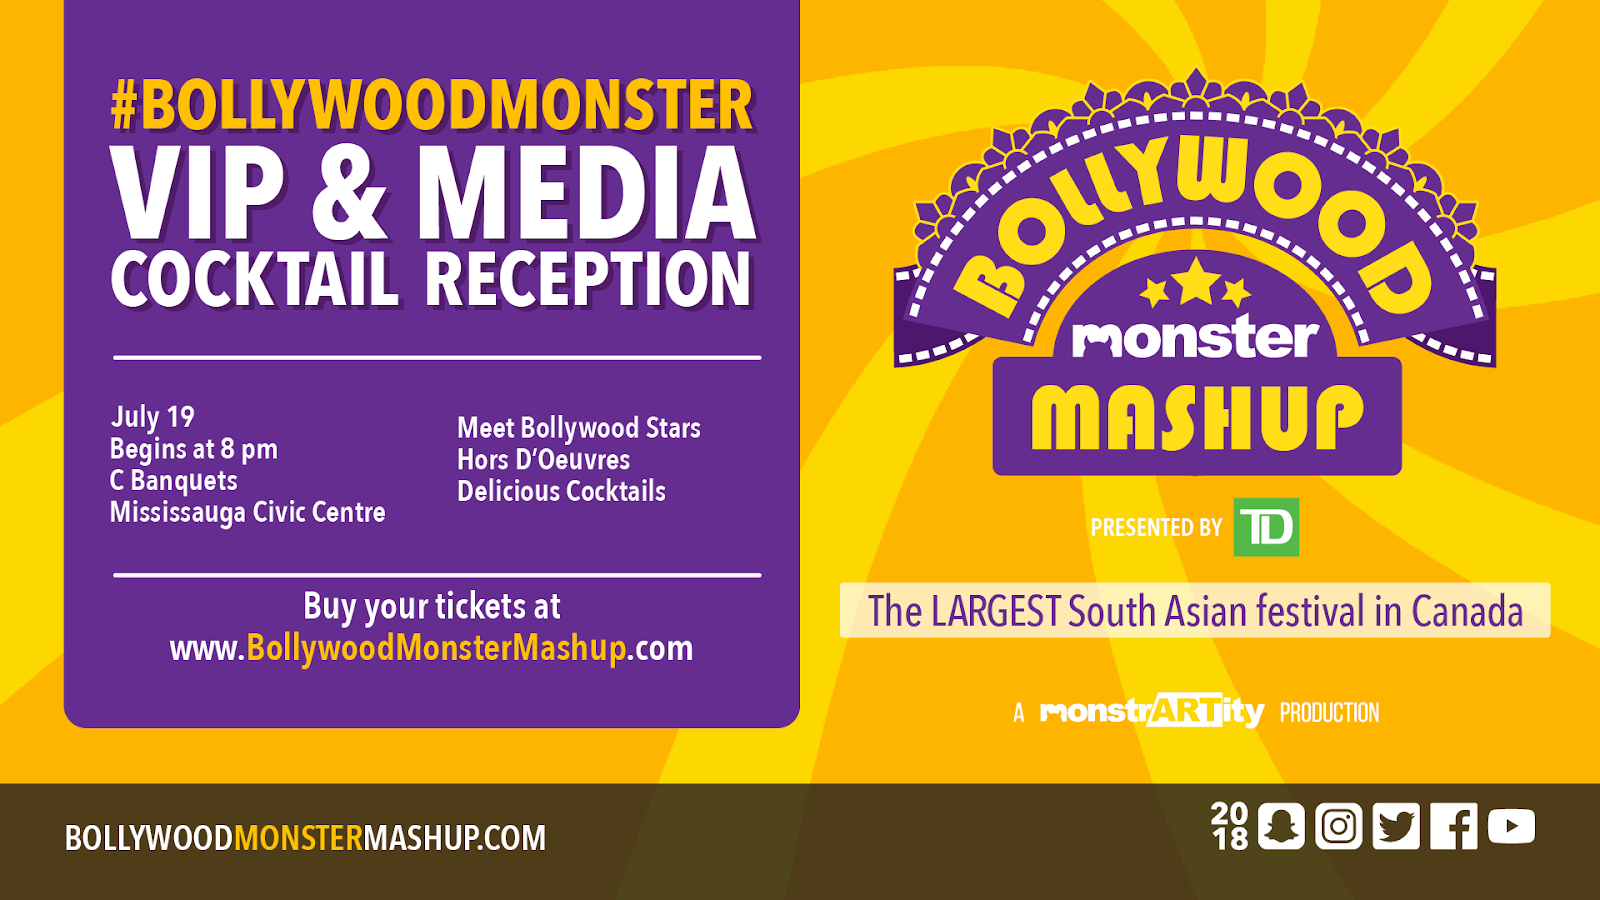 Bollywood stars to mingle in Mississauga at the #BollywoodMonster VIP reception